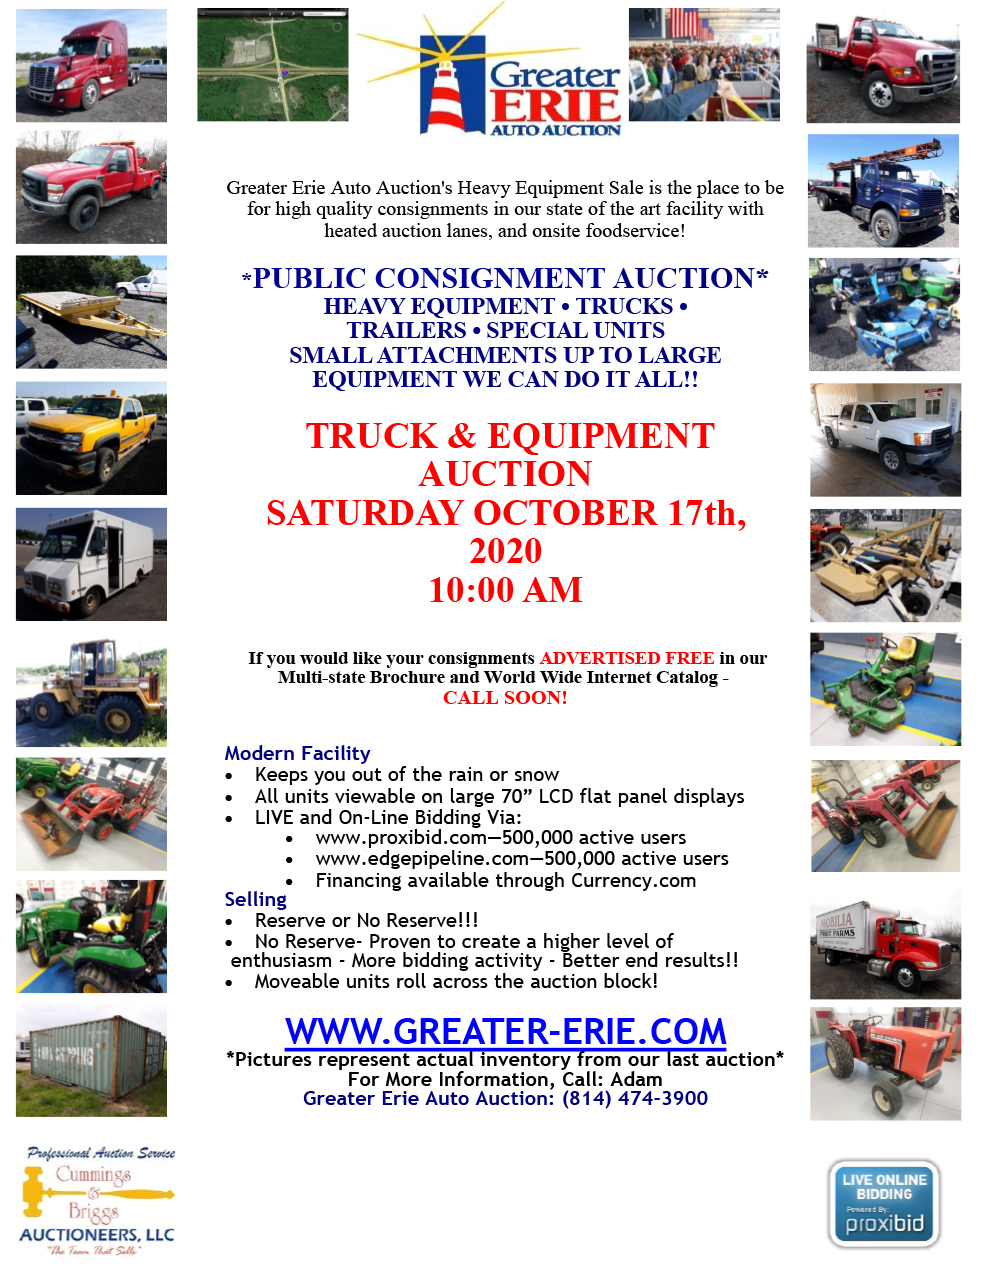 2020 Heavy Equipment Sale at Greater Erie Auto Auction | Saturday June 13